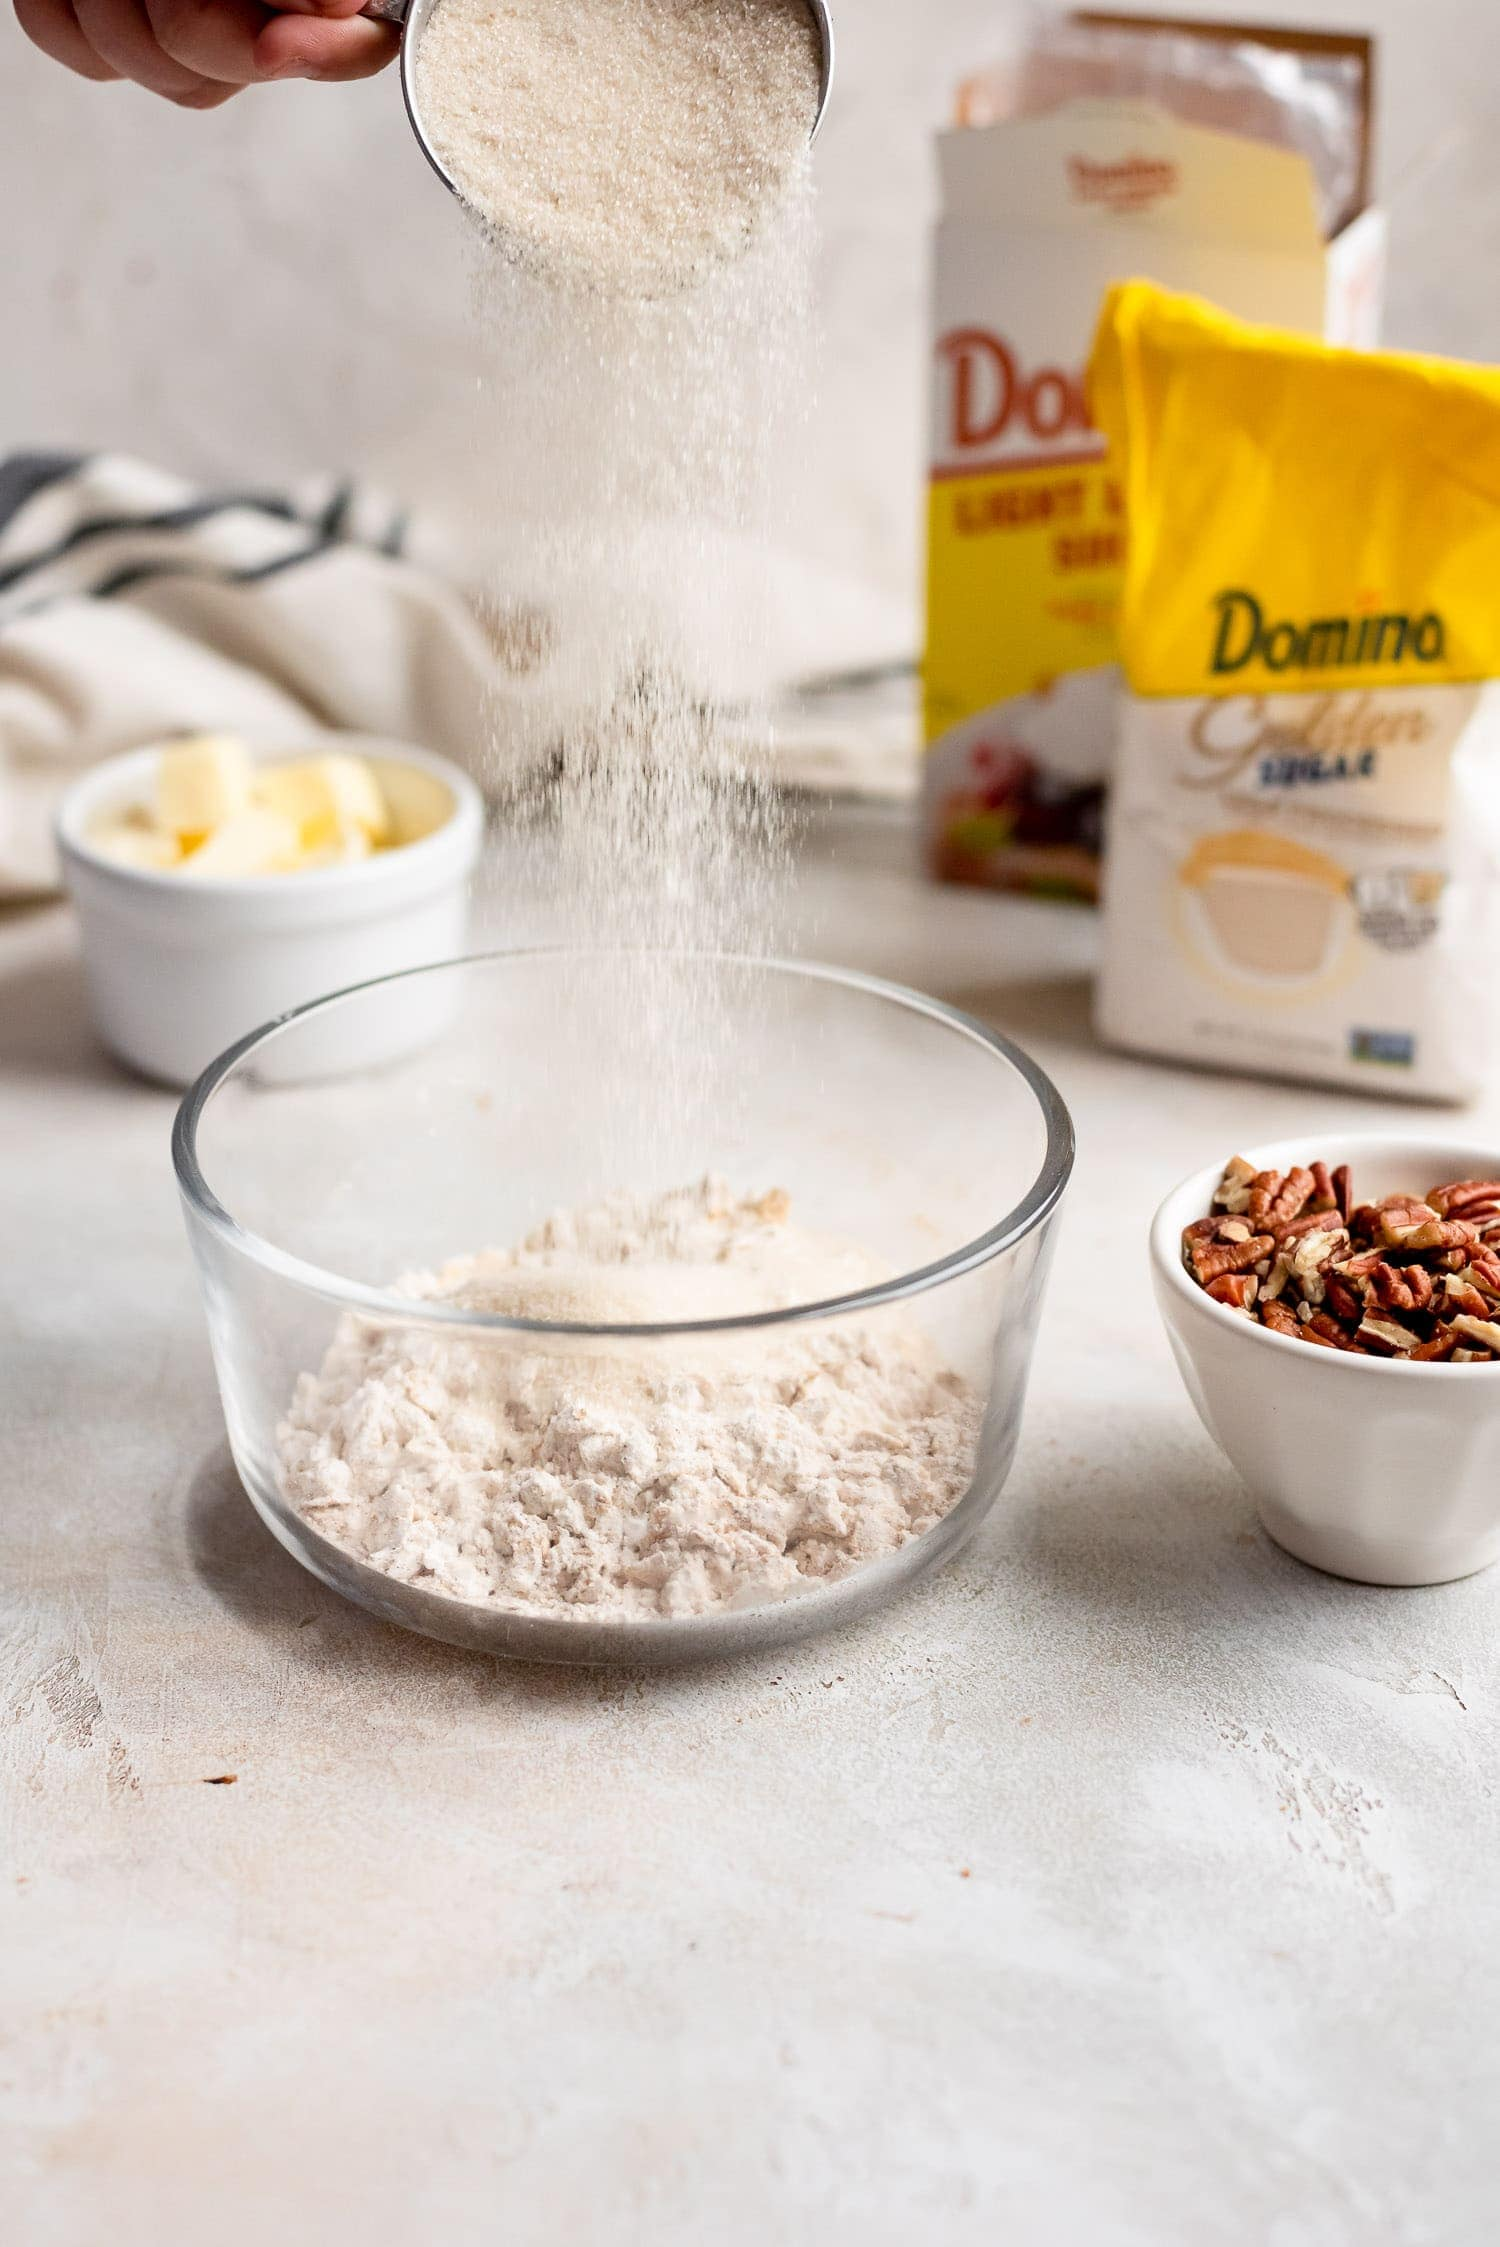 pouring sugar into bowl to make streusel